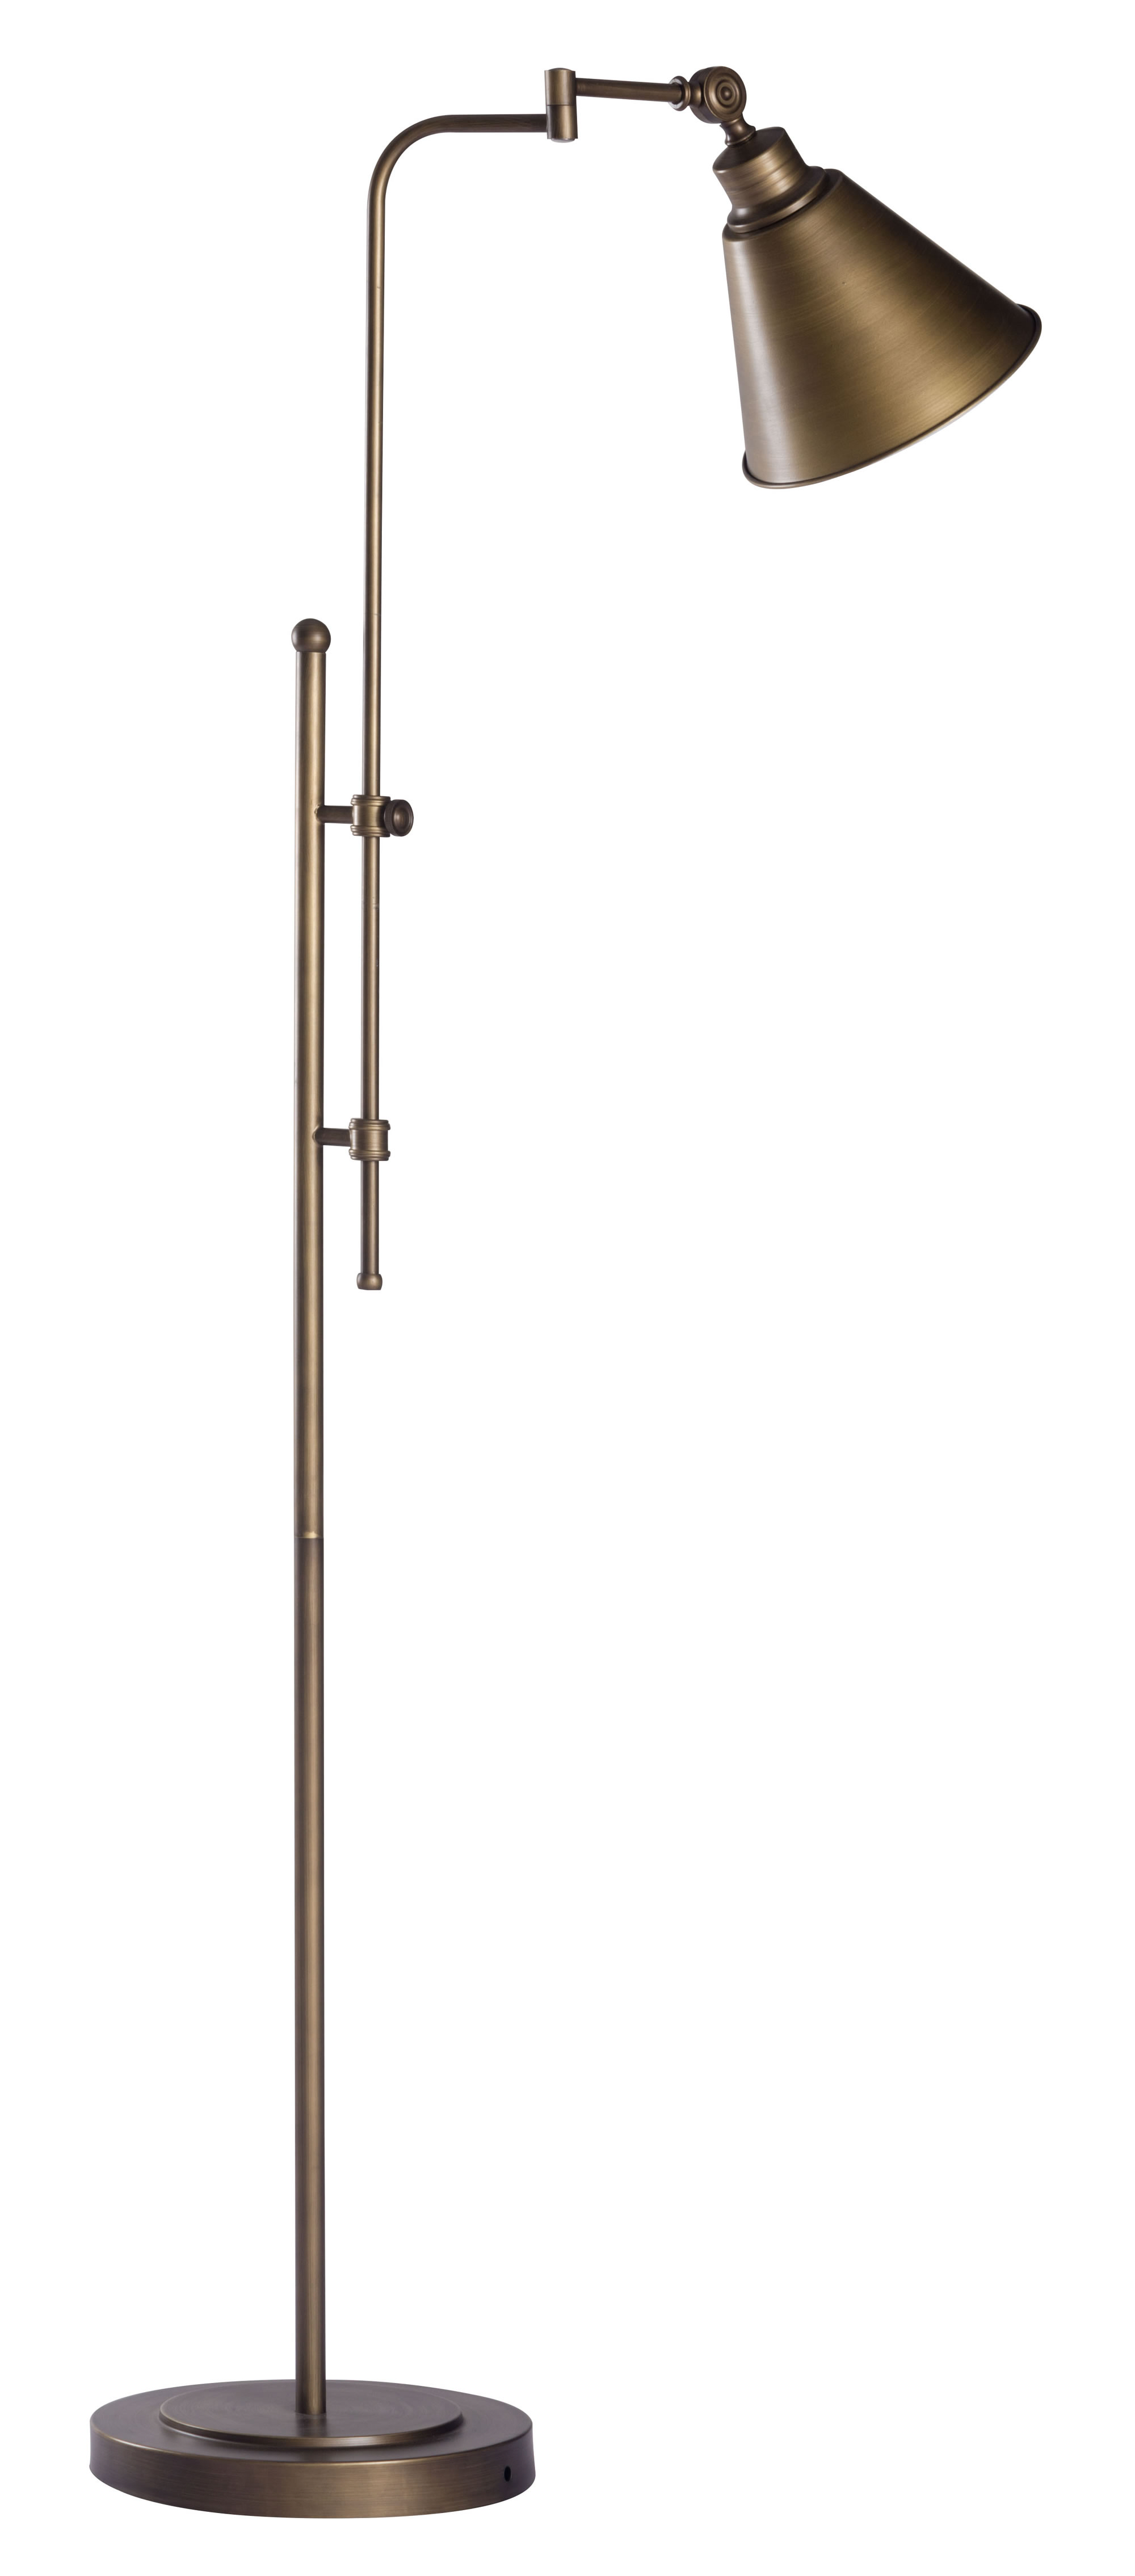 "19.7"" X 19.7"" X 69"" Fabric Floor Lamp"